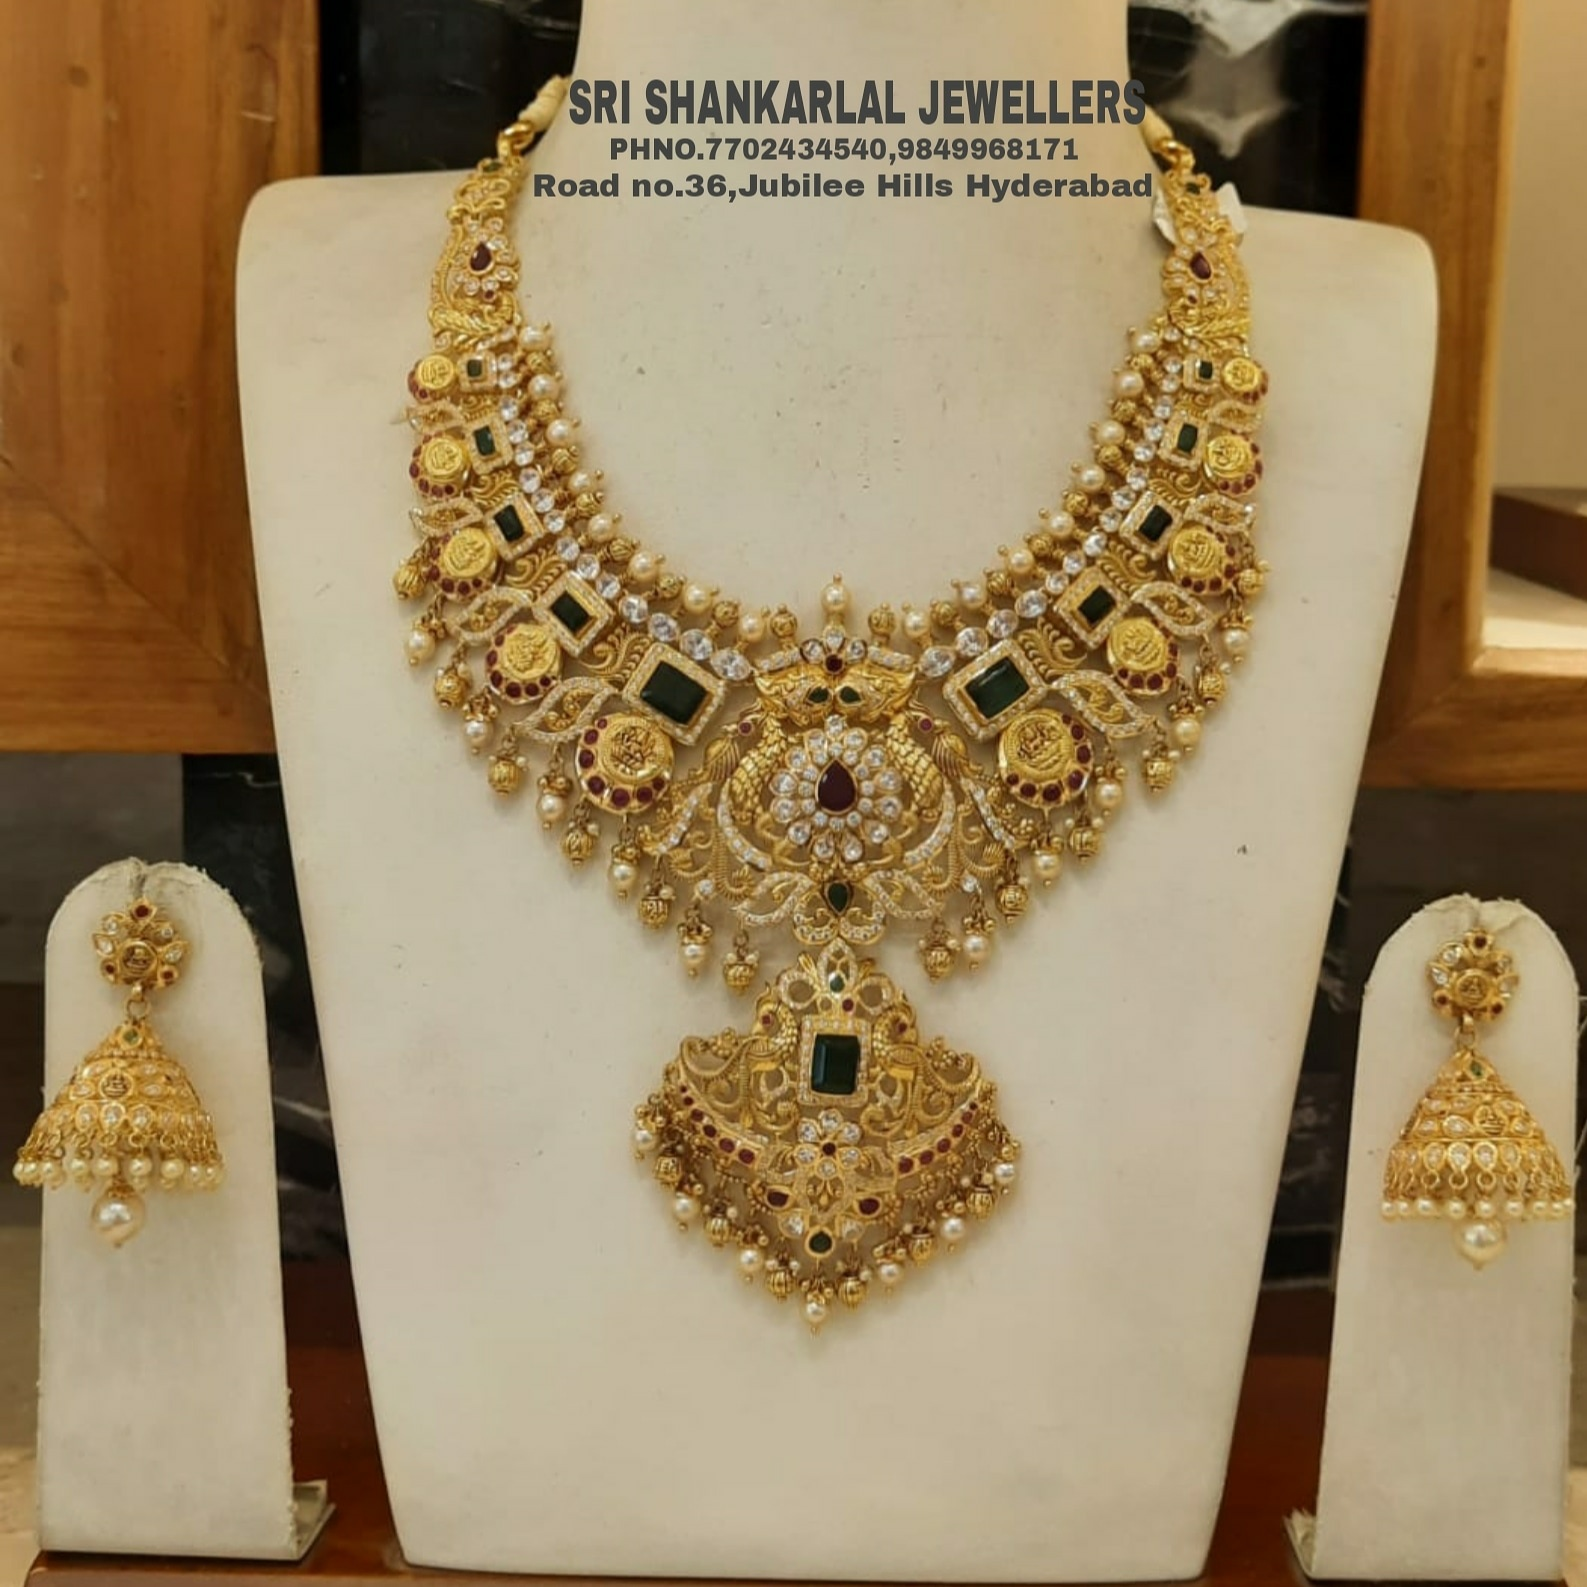 Latest Bridal Necklace in Nakshi CZ Light weight in Heavy looking and vast collection! Please visit us on video call 7702434540 9849968171 to see more collection 2021-03-10